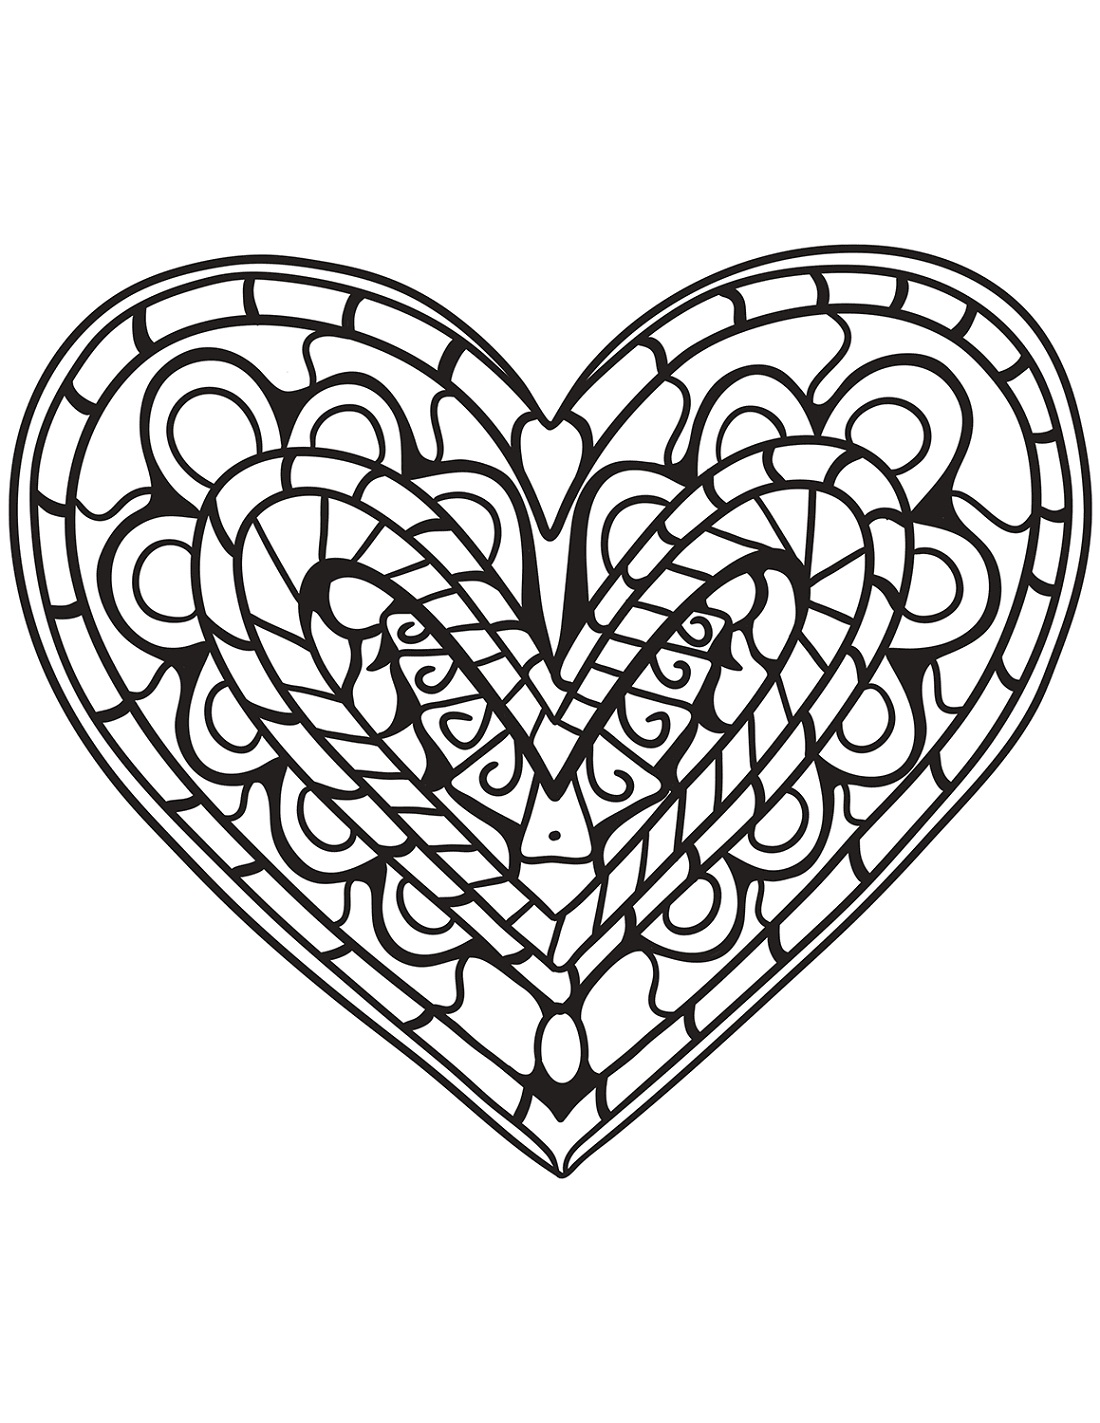 Coloring Pages Online Heart